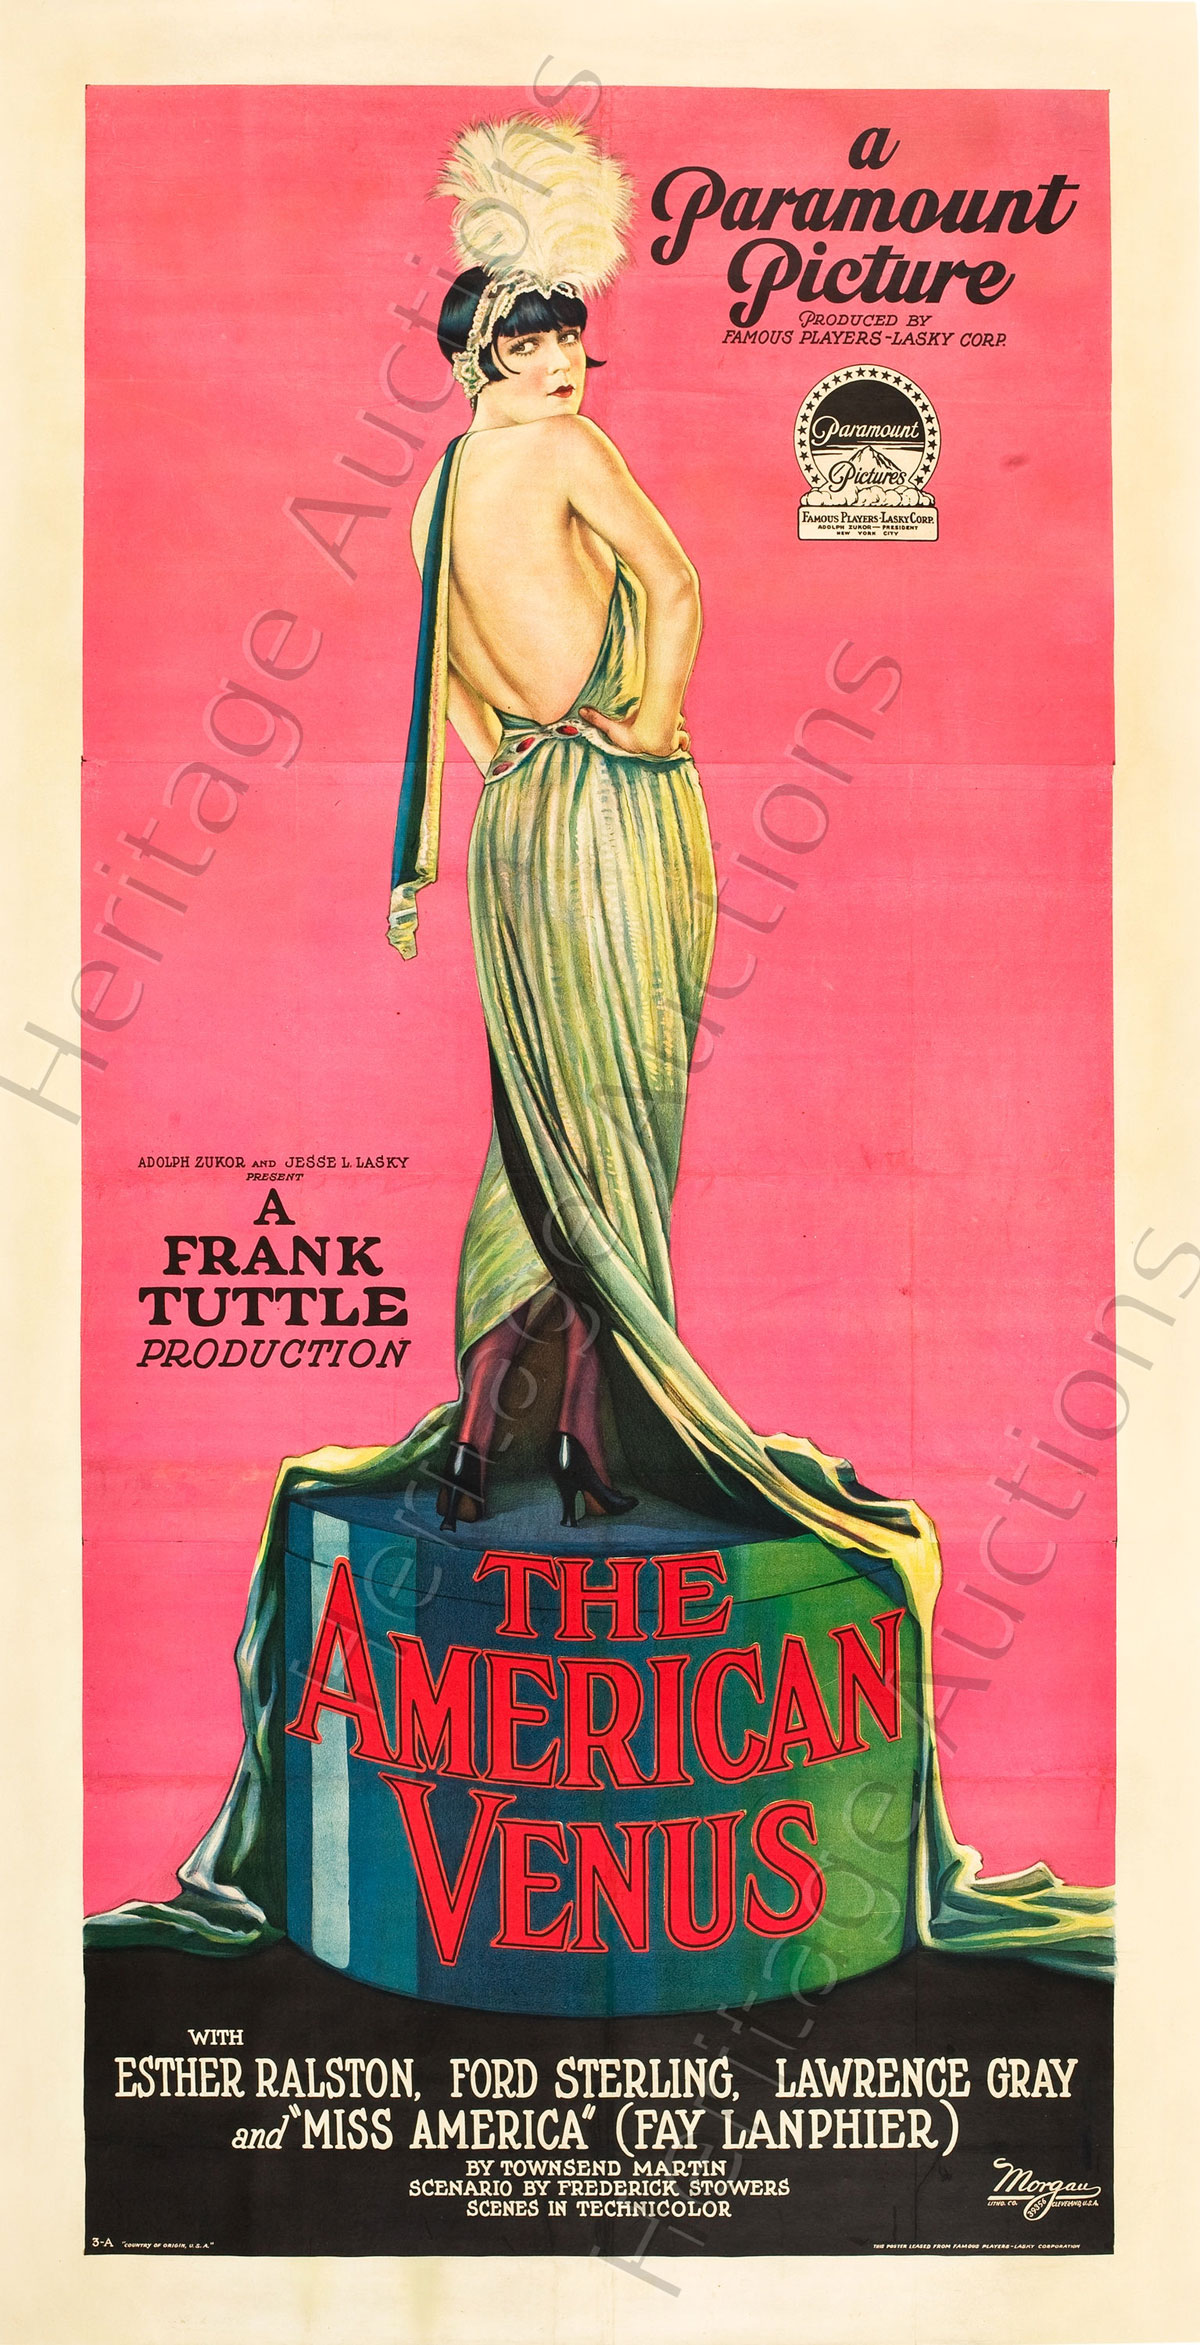 The American Venus Three Sheet Movie Poster